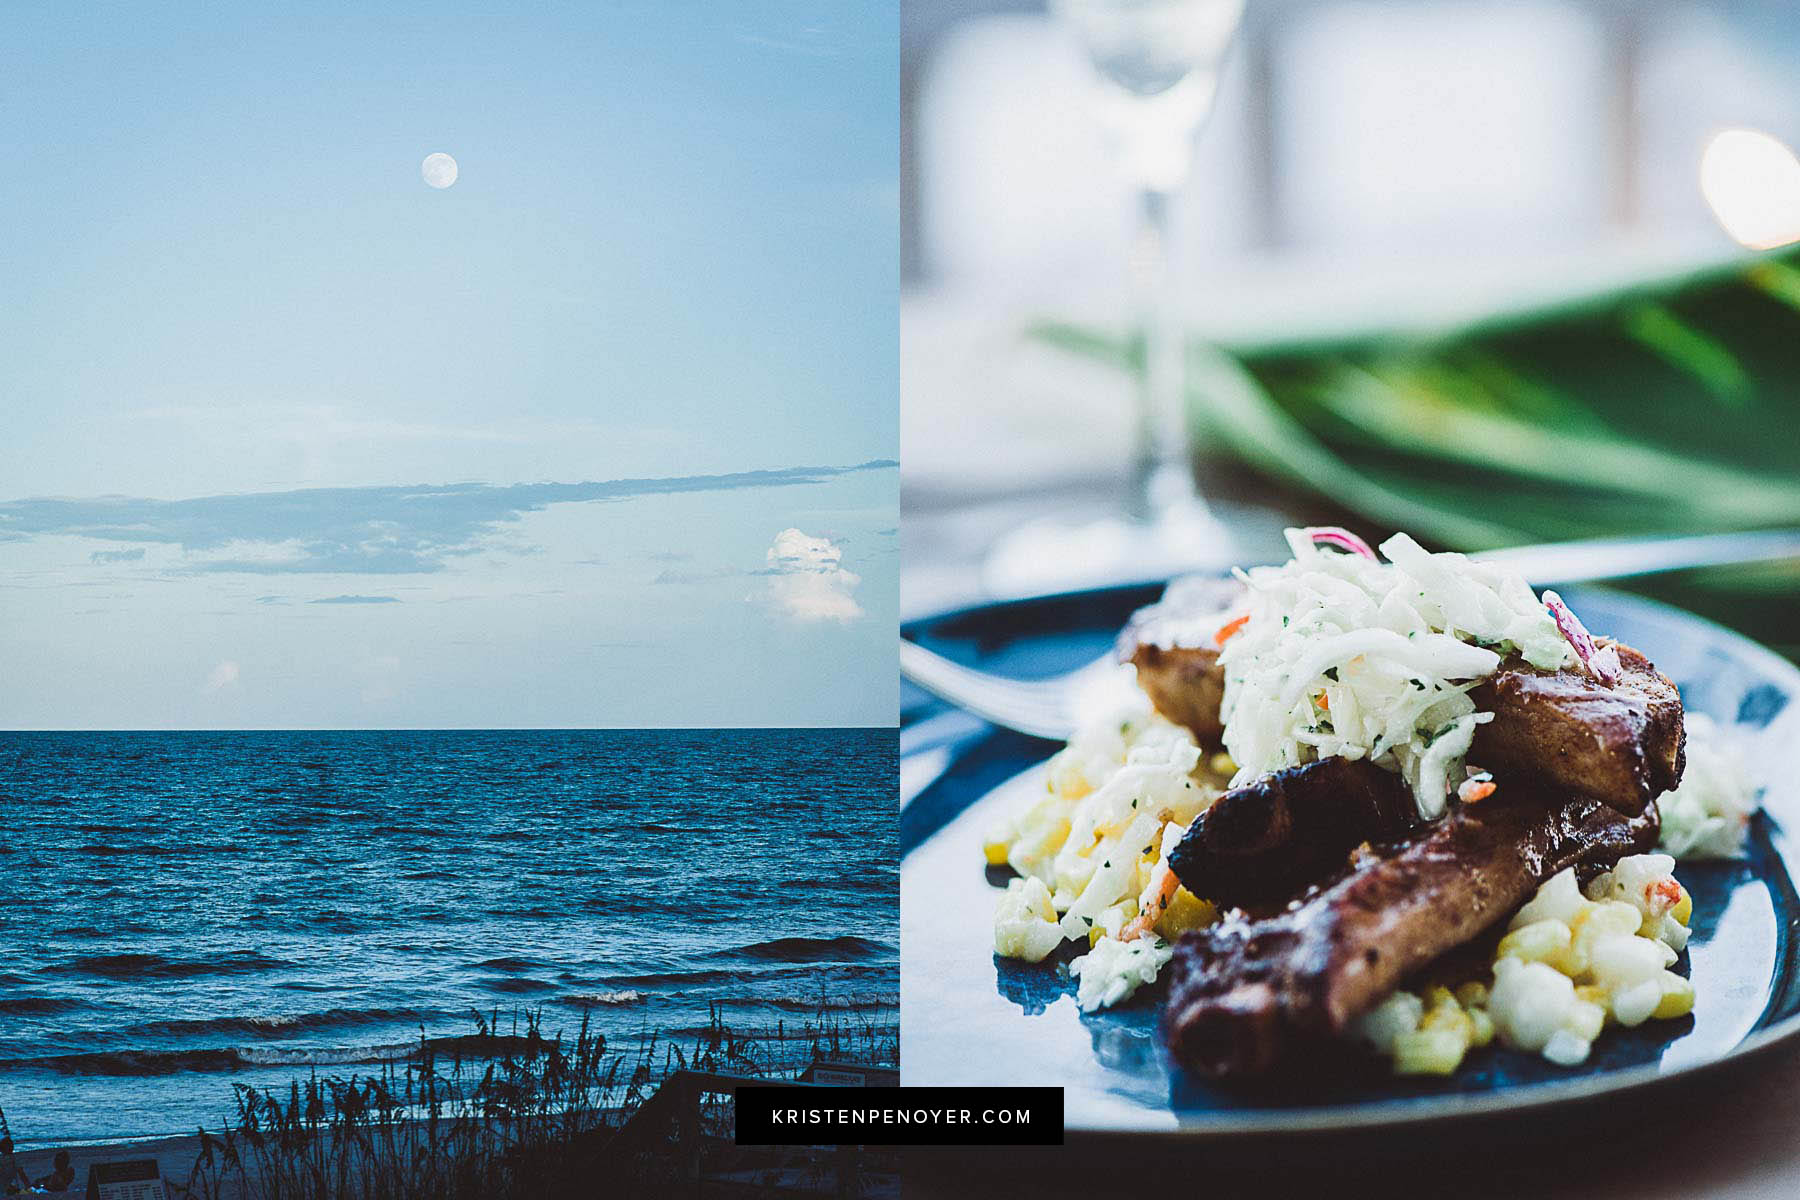 Atlantic ocean view and food at the Sawgrass Marriott's 619 Ocean View beachside restaurant and resort.